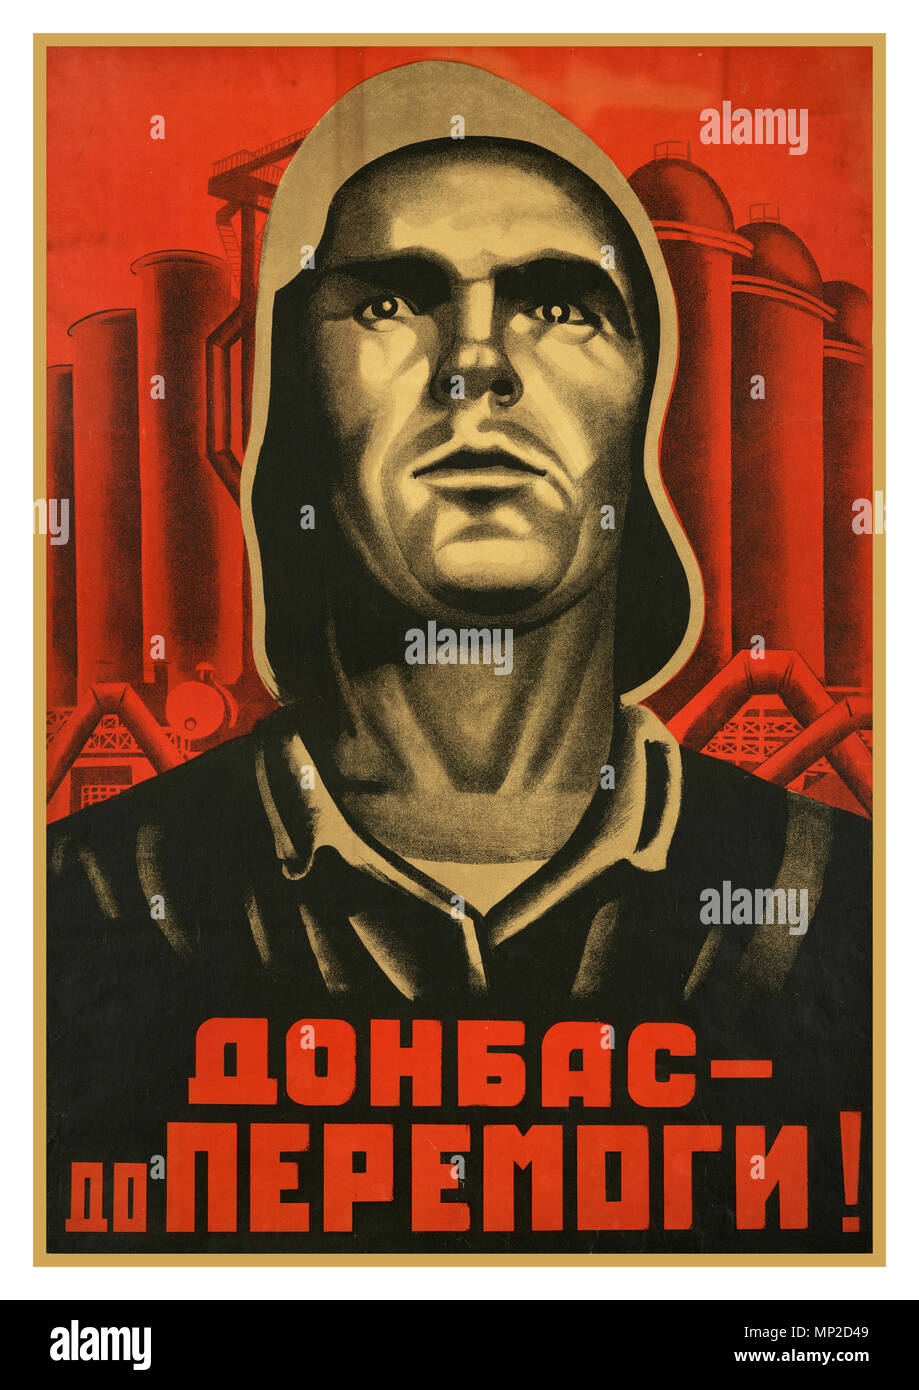 Vintage Soviet Union Propaganda Poster Retro Political Art 'Donbas, Until We Overcome' - Stock Image